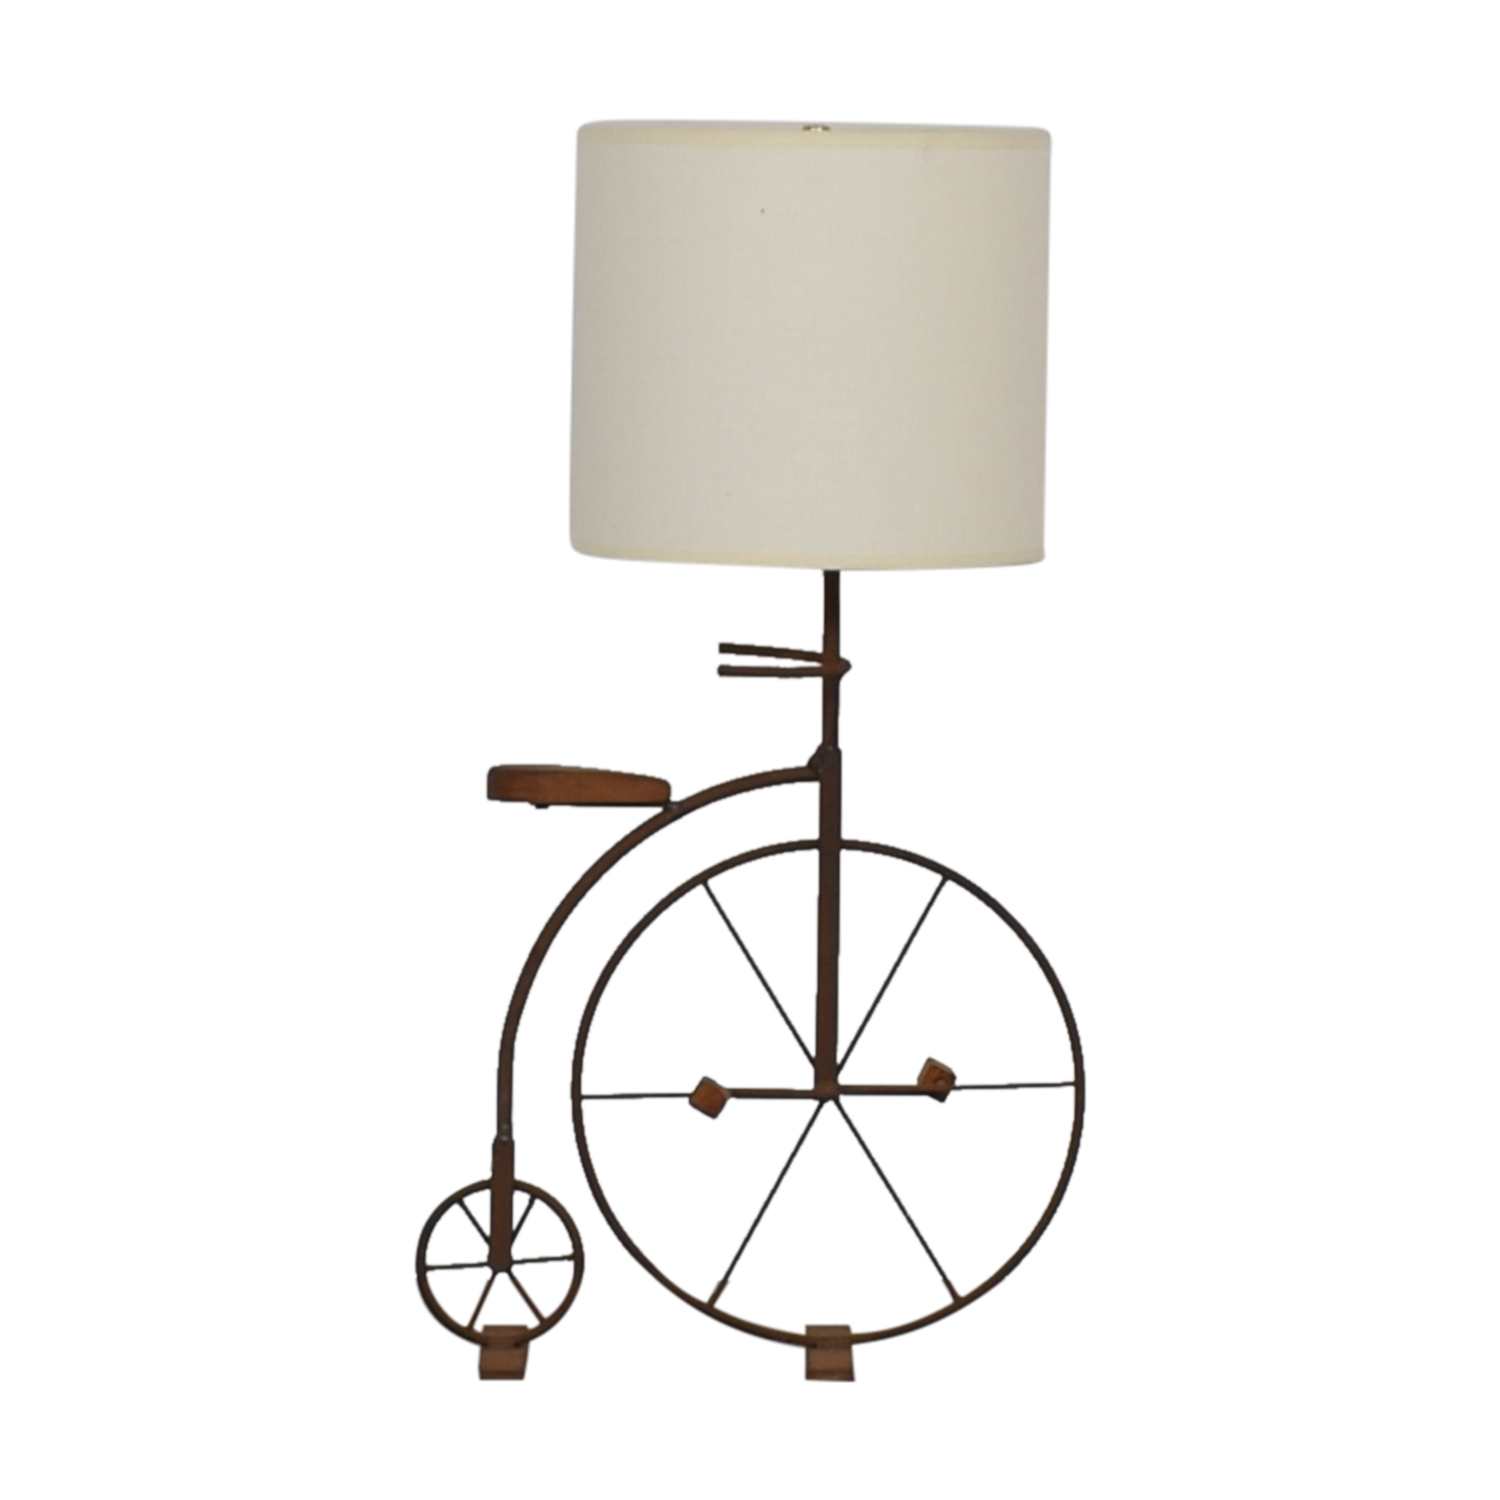 ABC Carpet & Home ABC Carpet & Home Bicycle Lamp nj